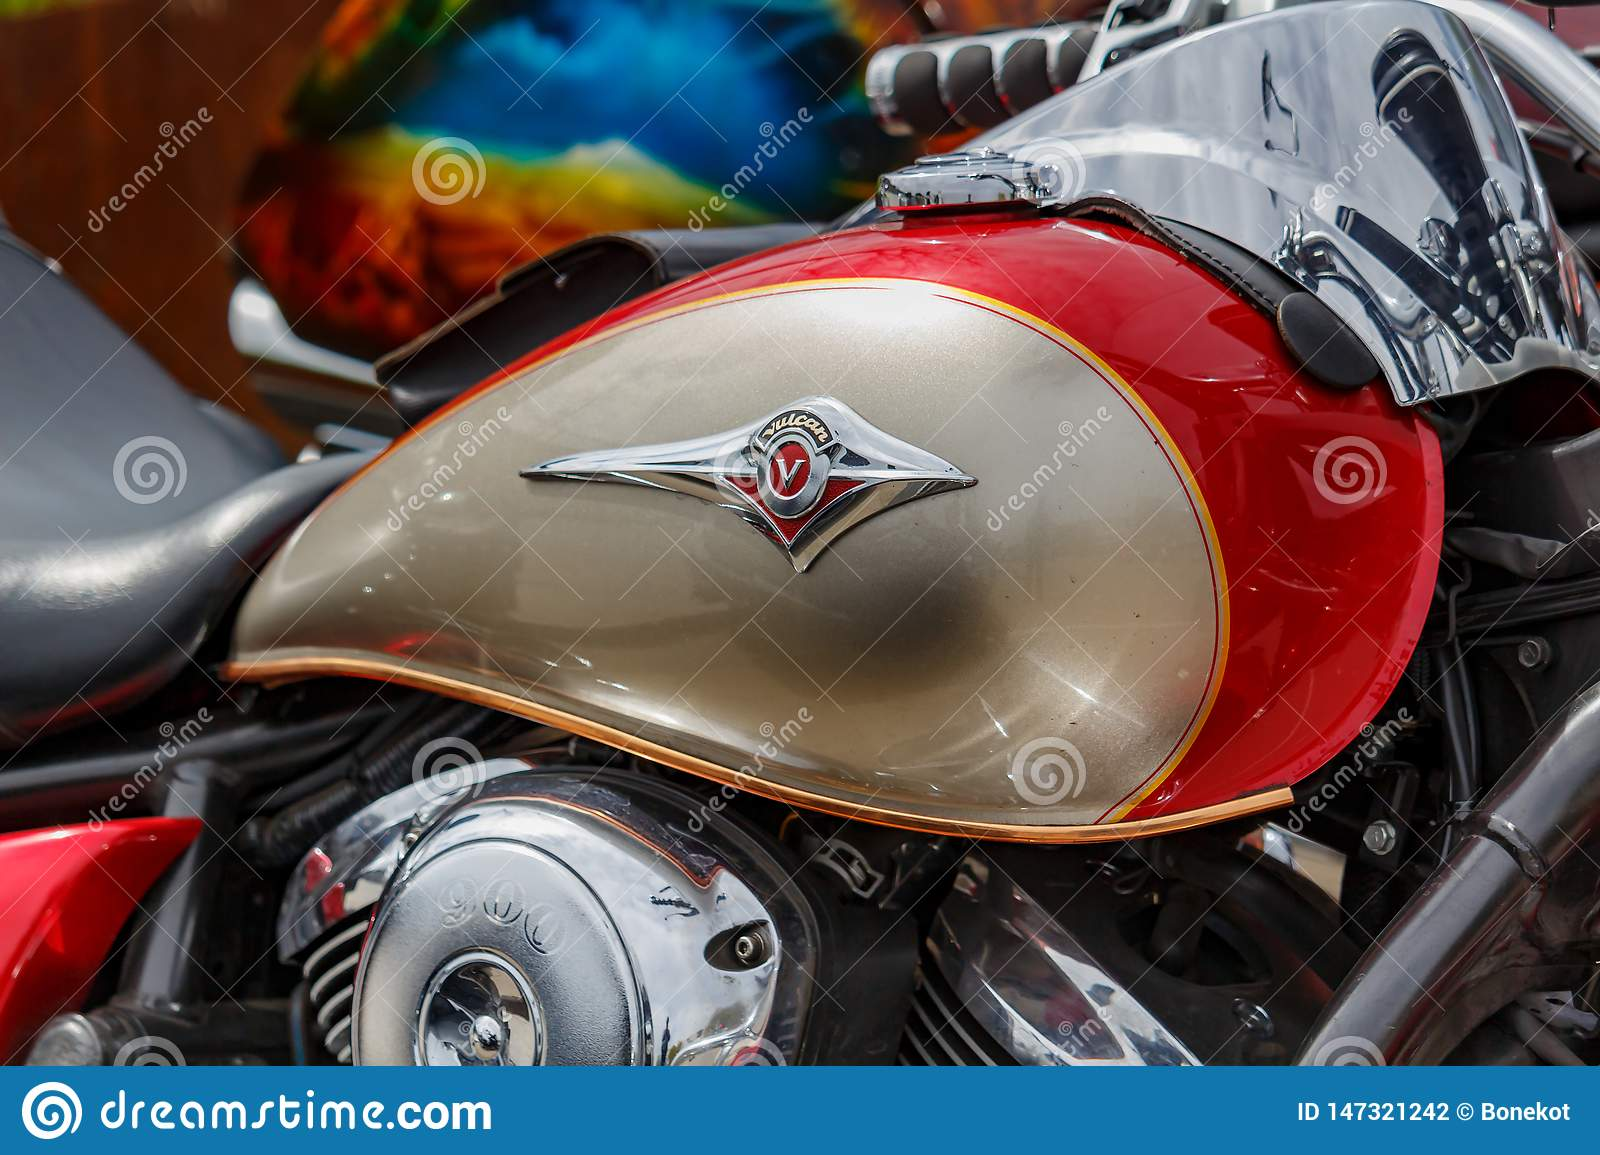 Moscow, Russia - May 04, 2019: Glossy red and bronze fuel tank of motorcycle with Kawasaki Vulcan emblem closeup. Moto festival